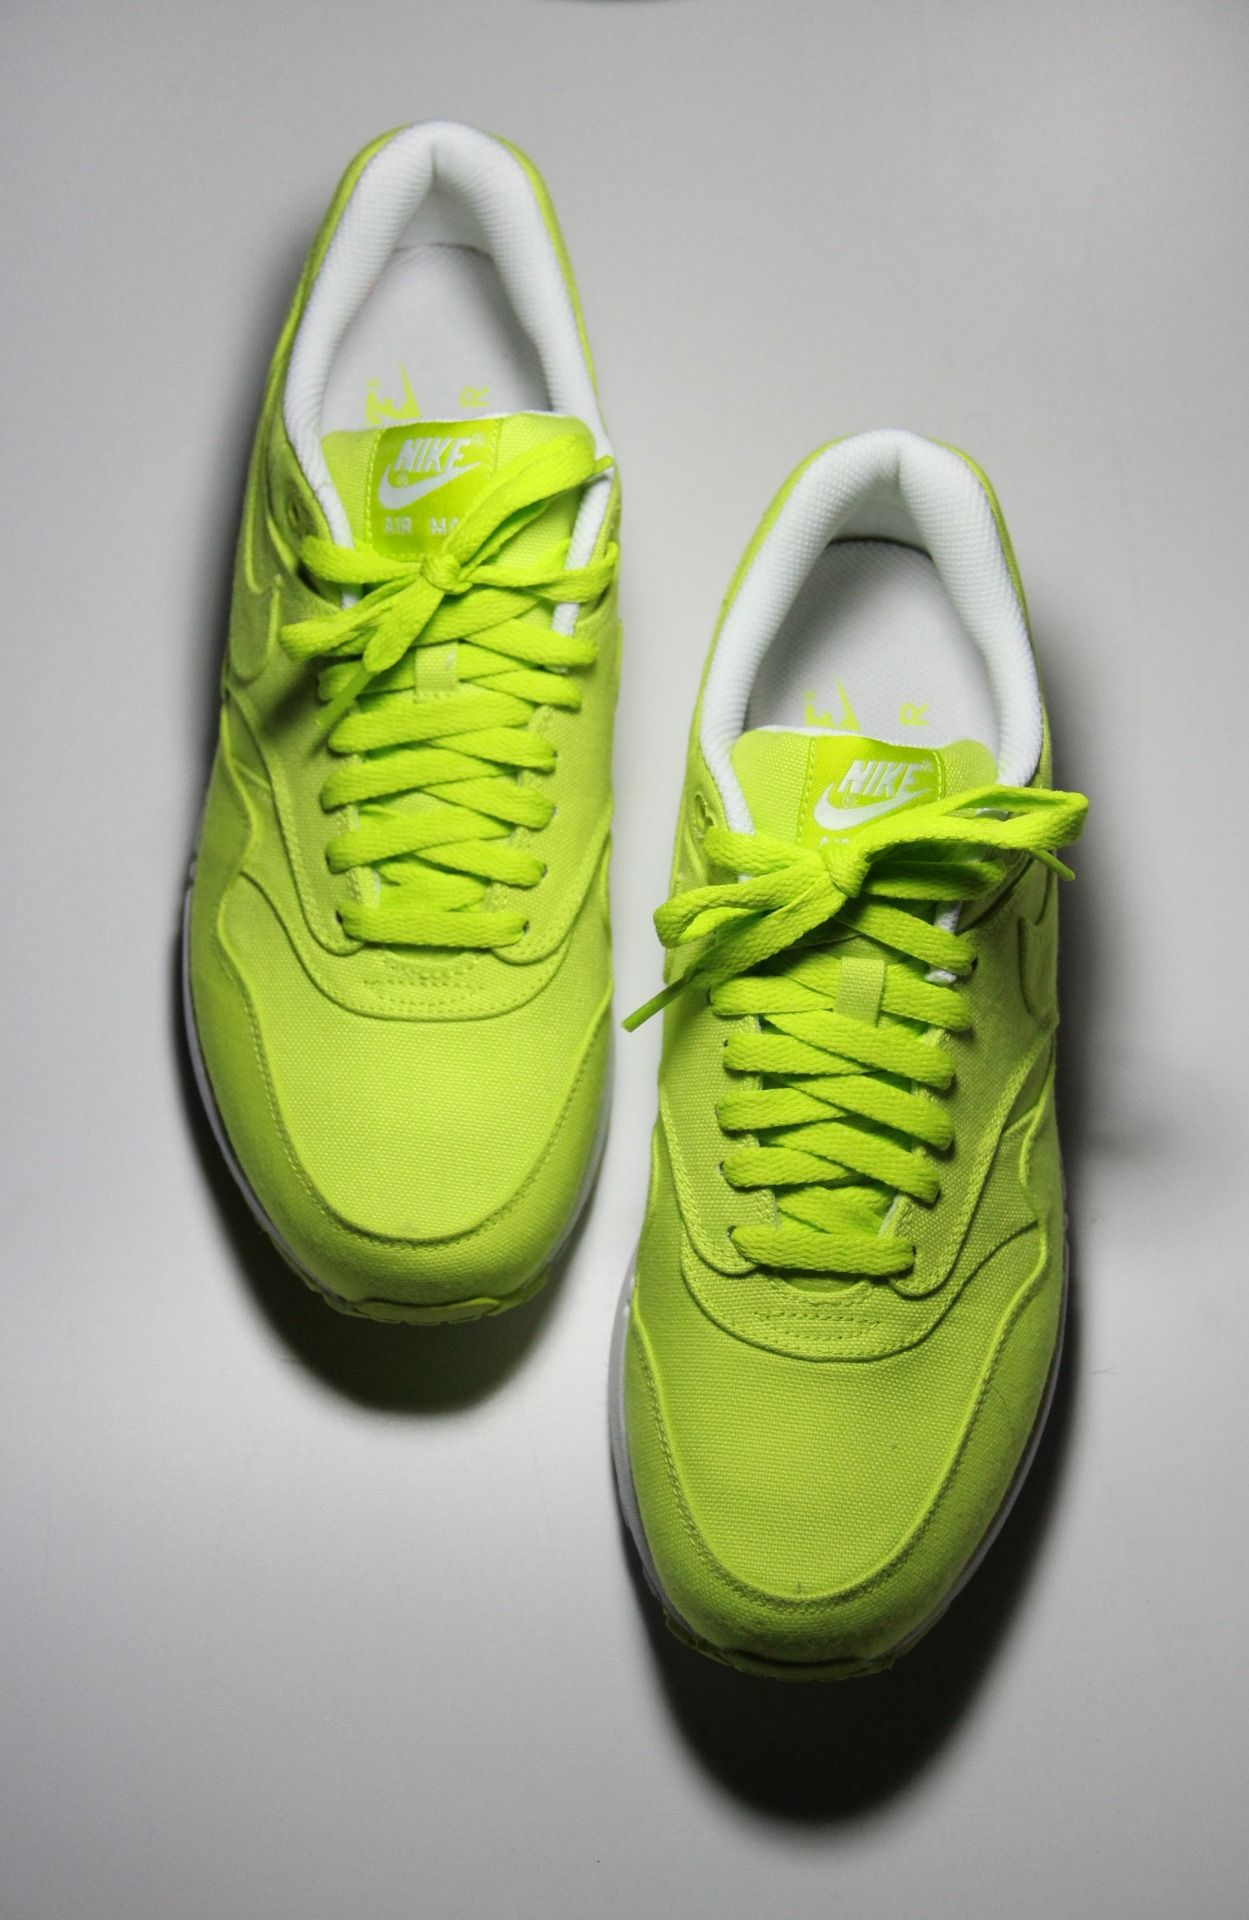 Adidas shoes outlet nike shoes cheap nike free shoes girls sneakers jpg  1249x1920 Nike day care e5a508ddb